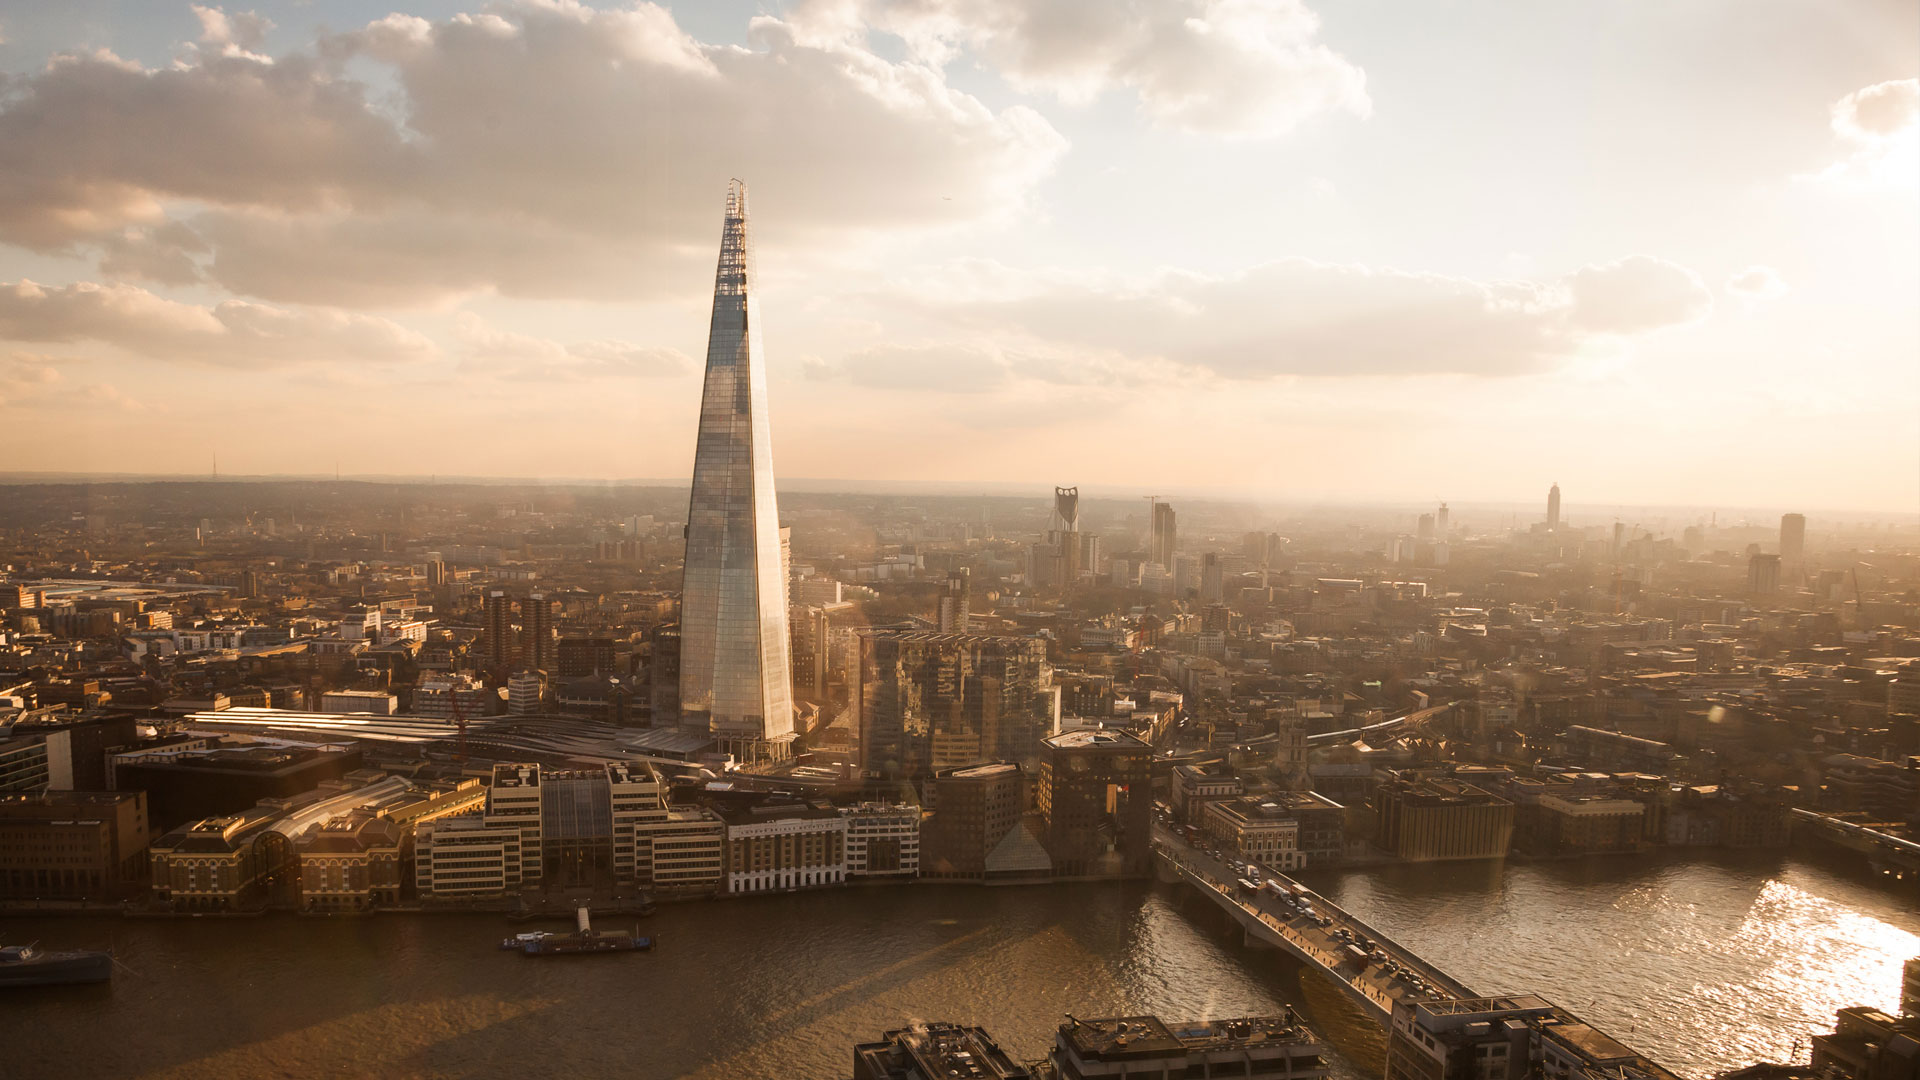 London skyline, view of London Bridge and the Shard